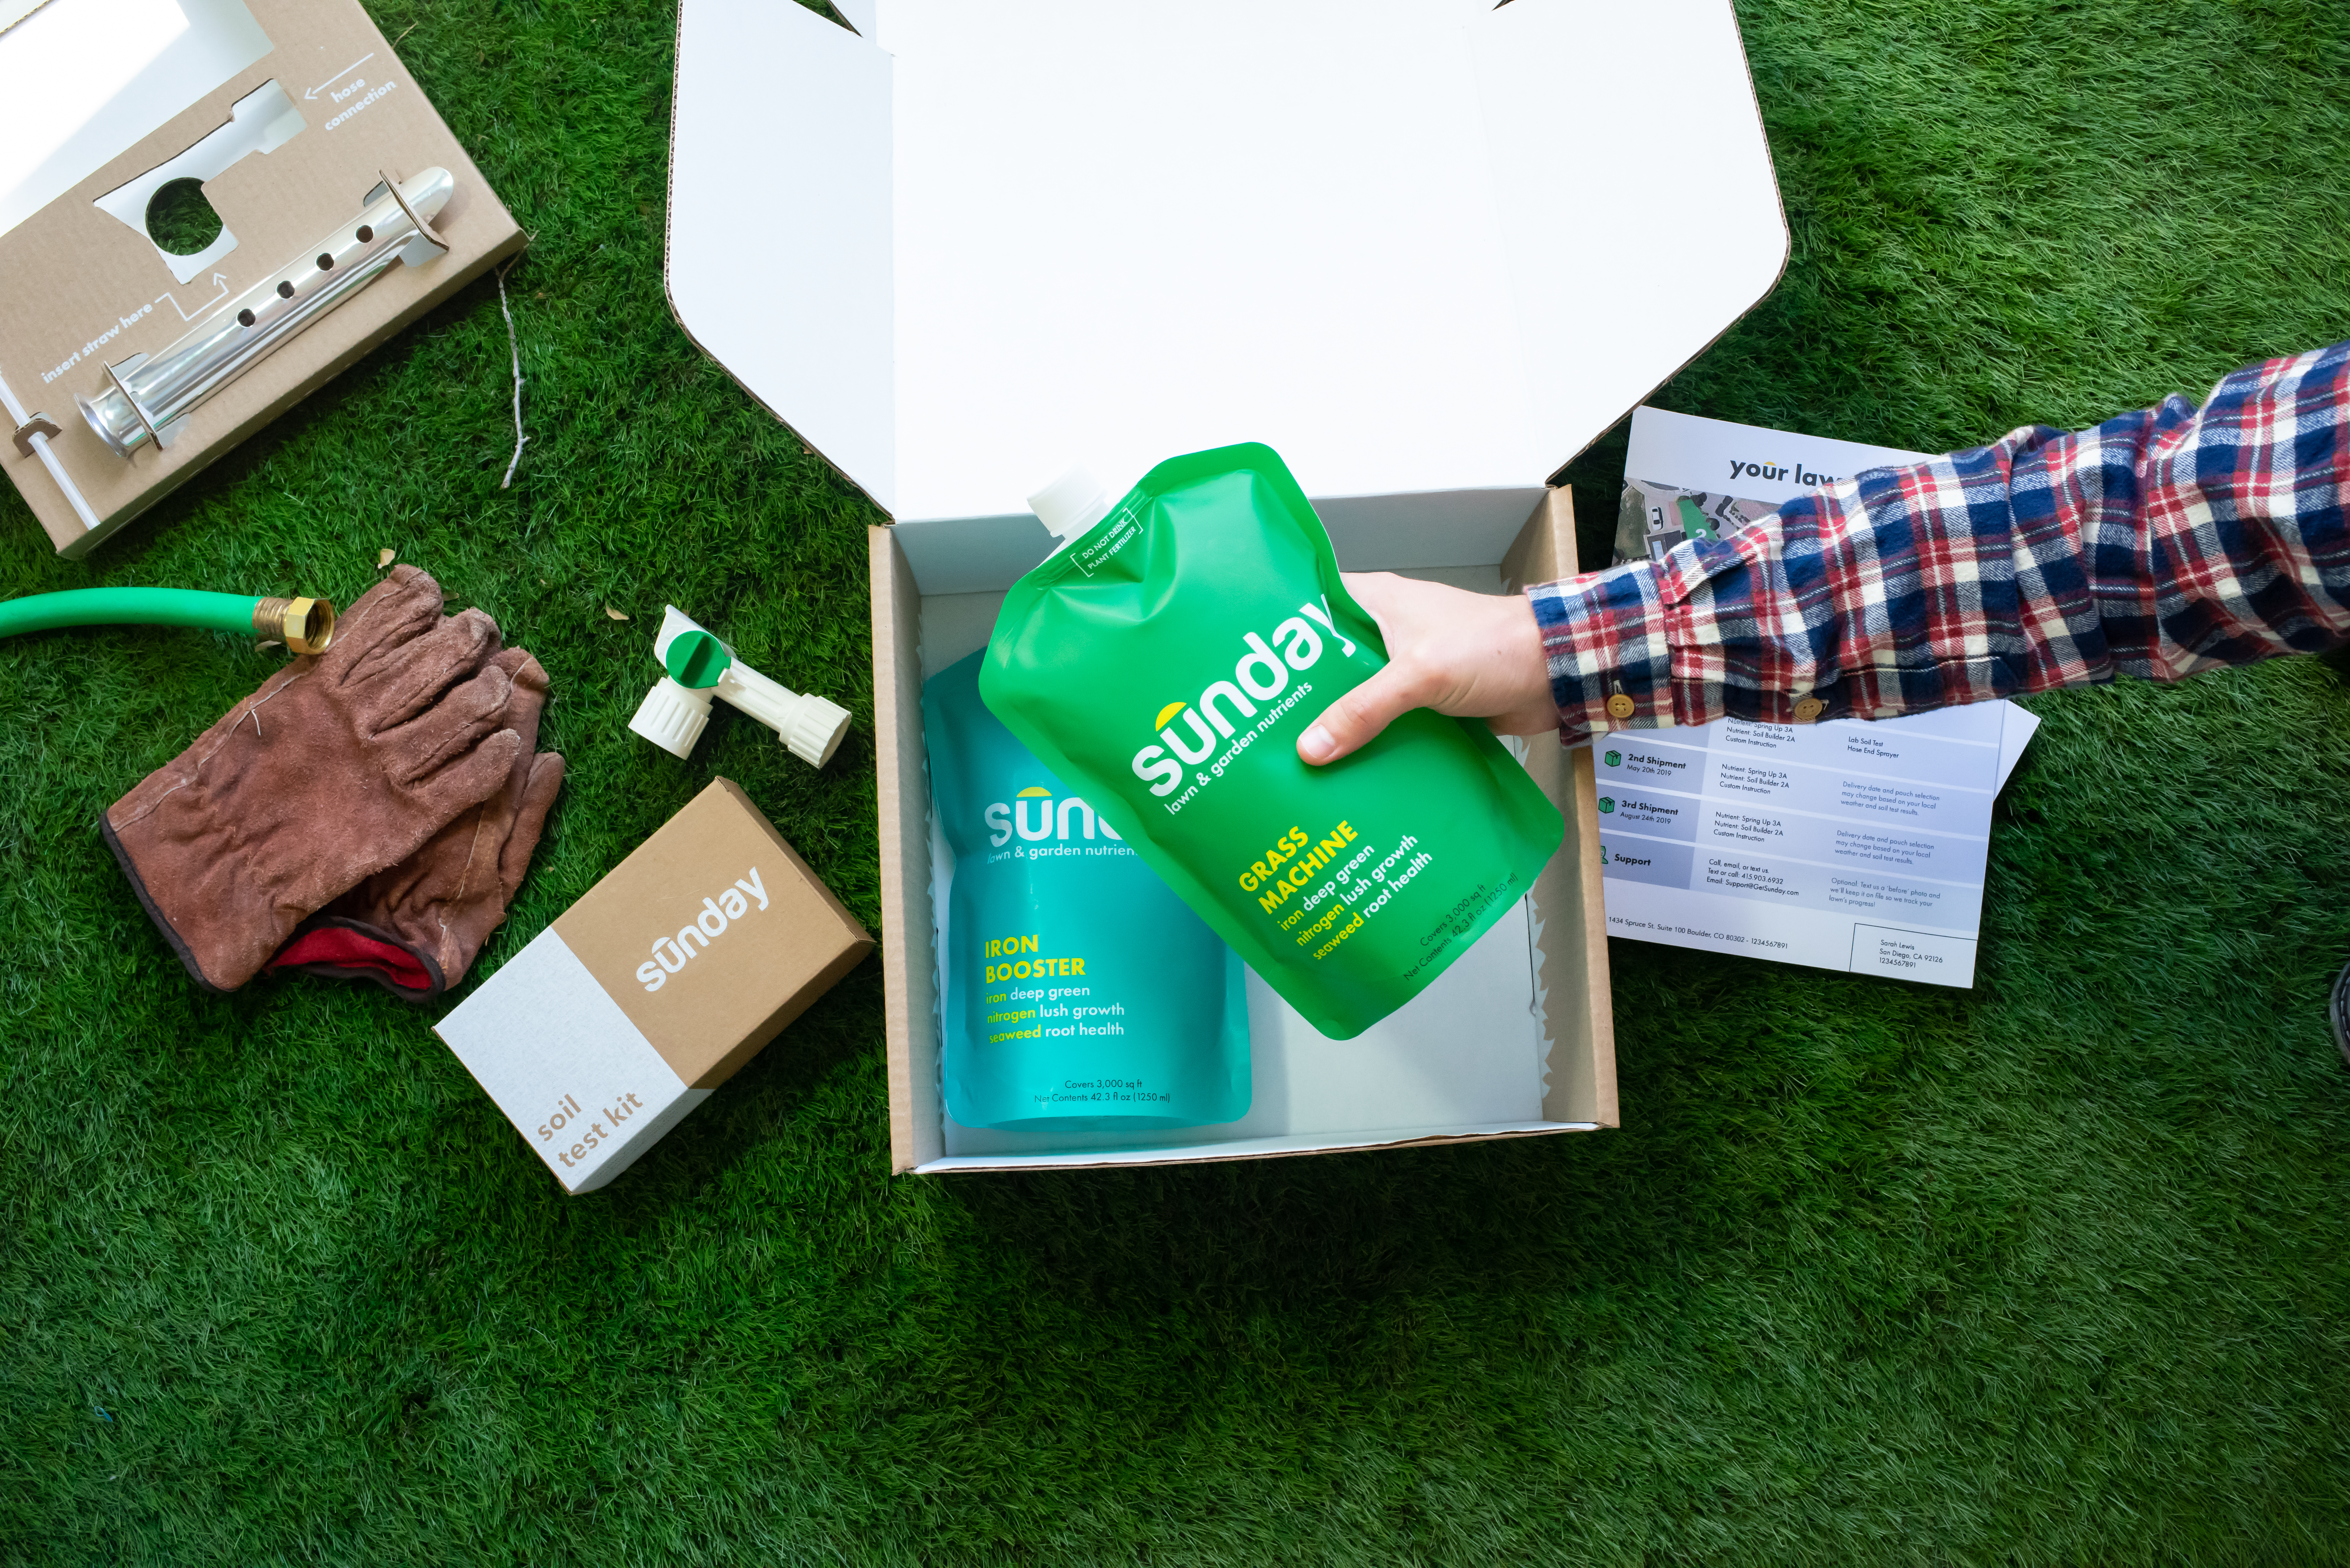 Lawn startup Sunday raises millions to help you with your backyard